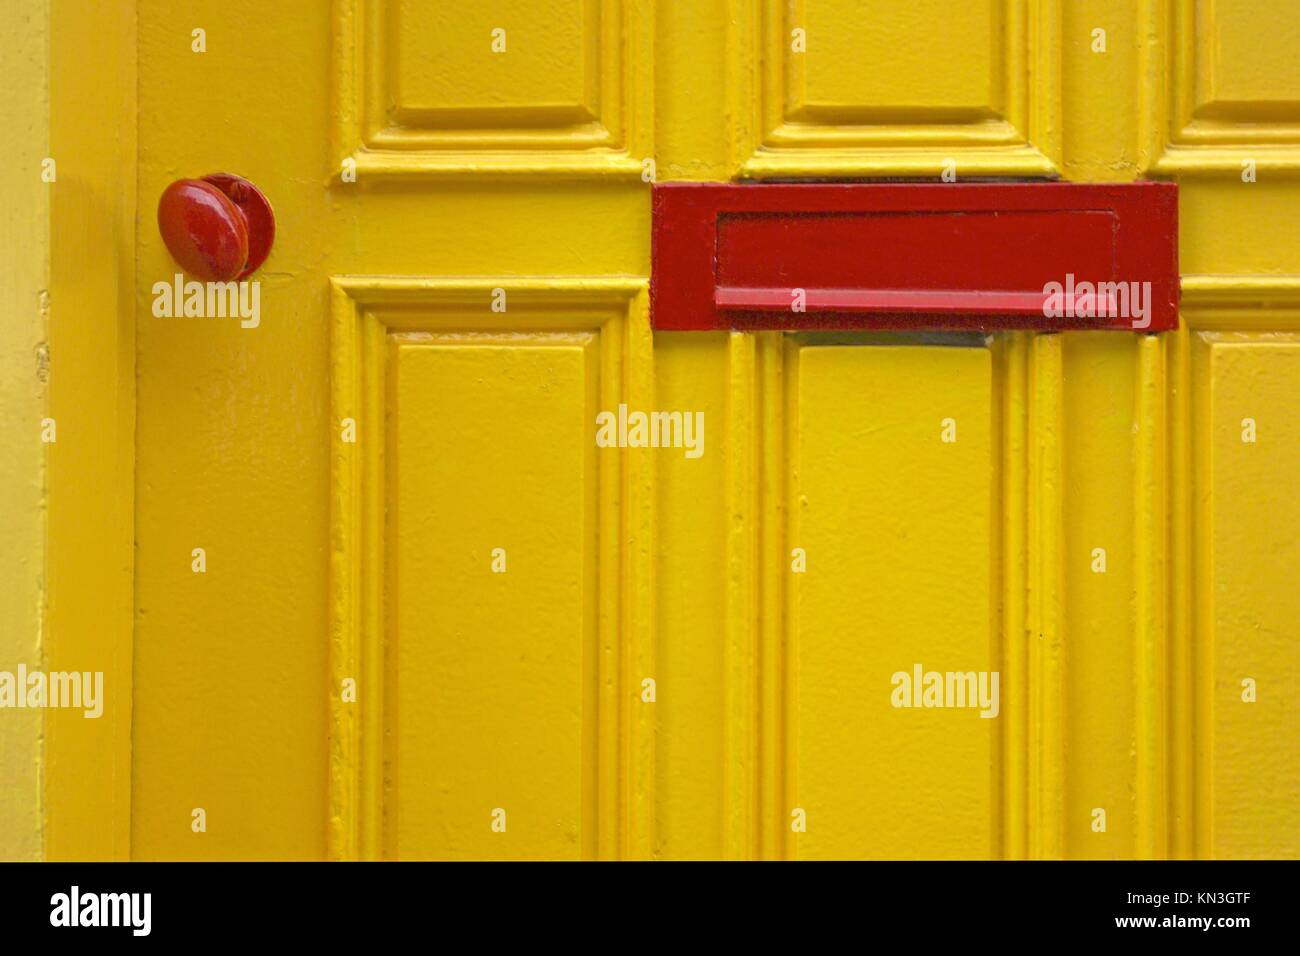 Extract of yellow with red door knob and letter drop Stock Photo ...